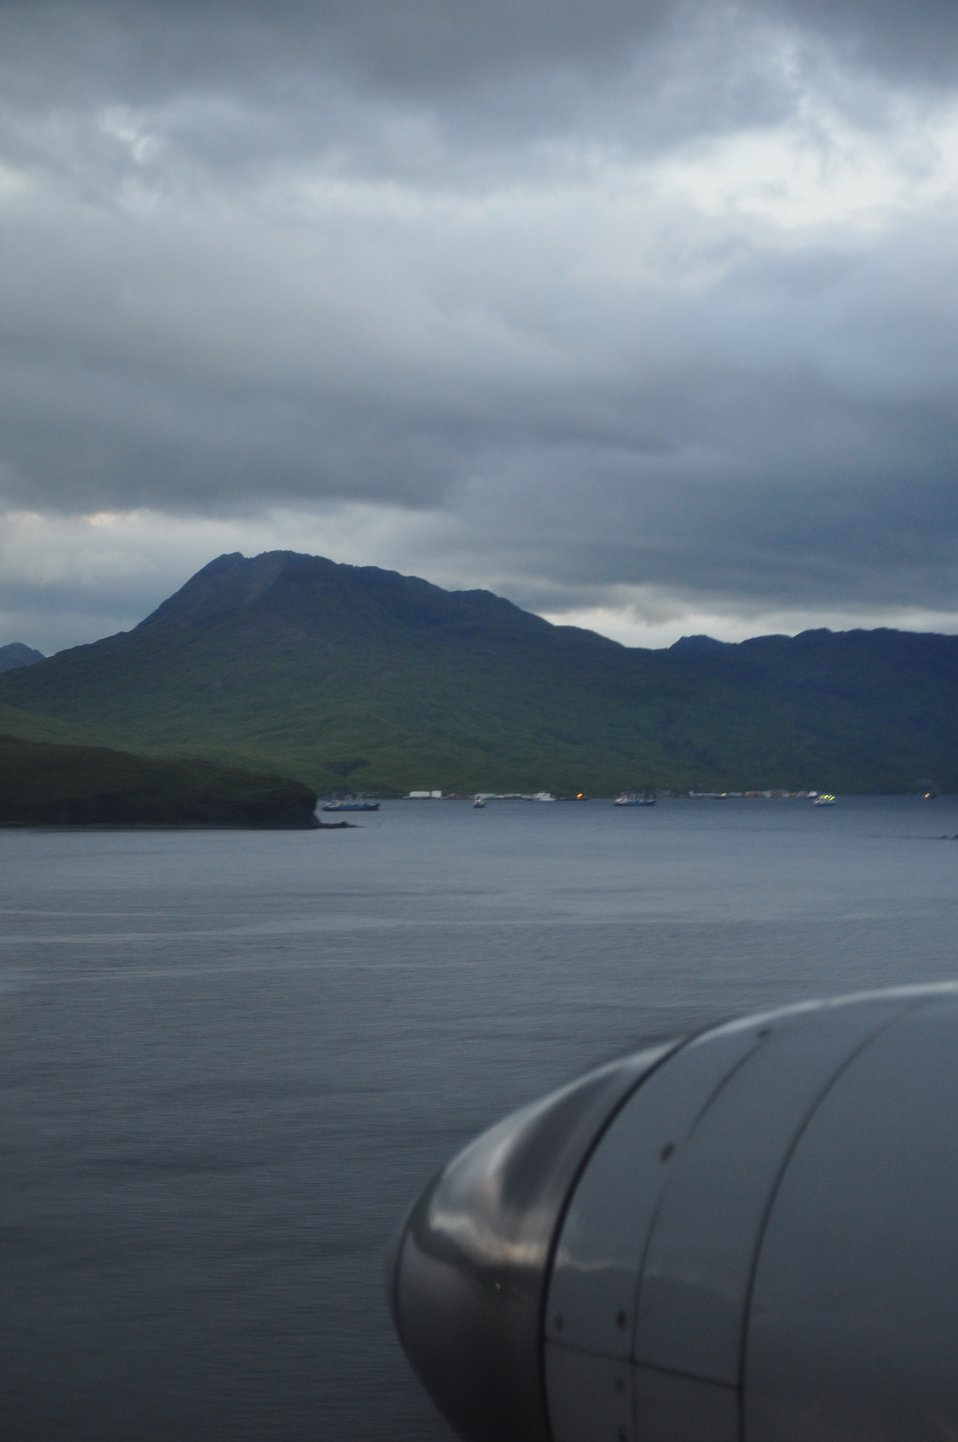 Final approach to Dutch Harbor.  Yikes!  Where's the airport!